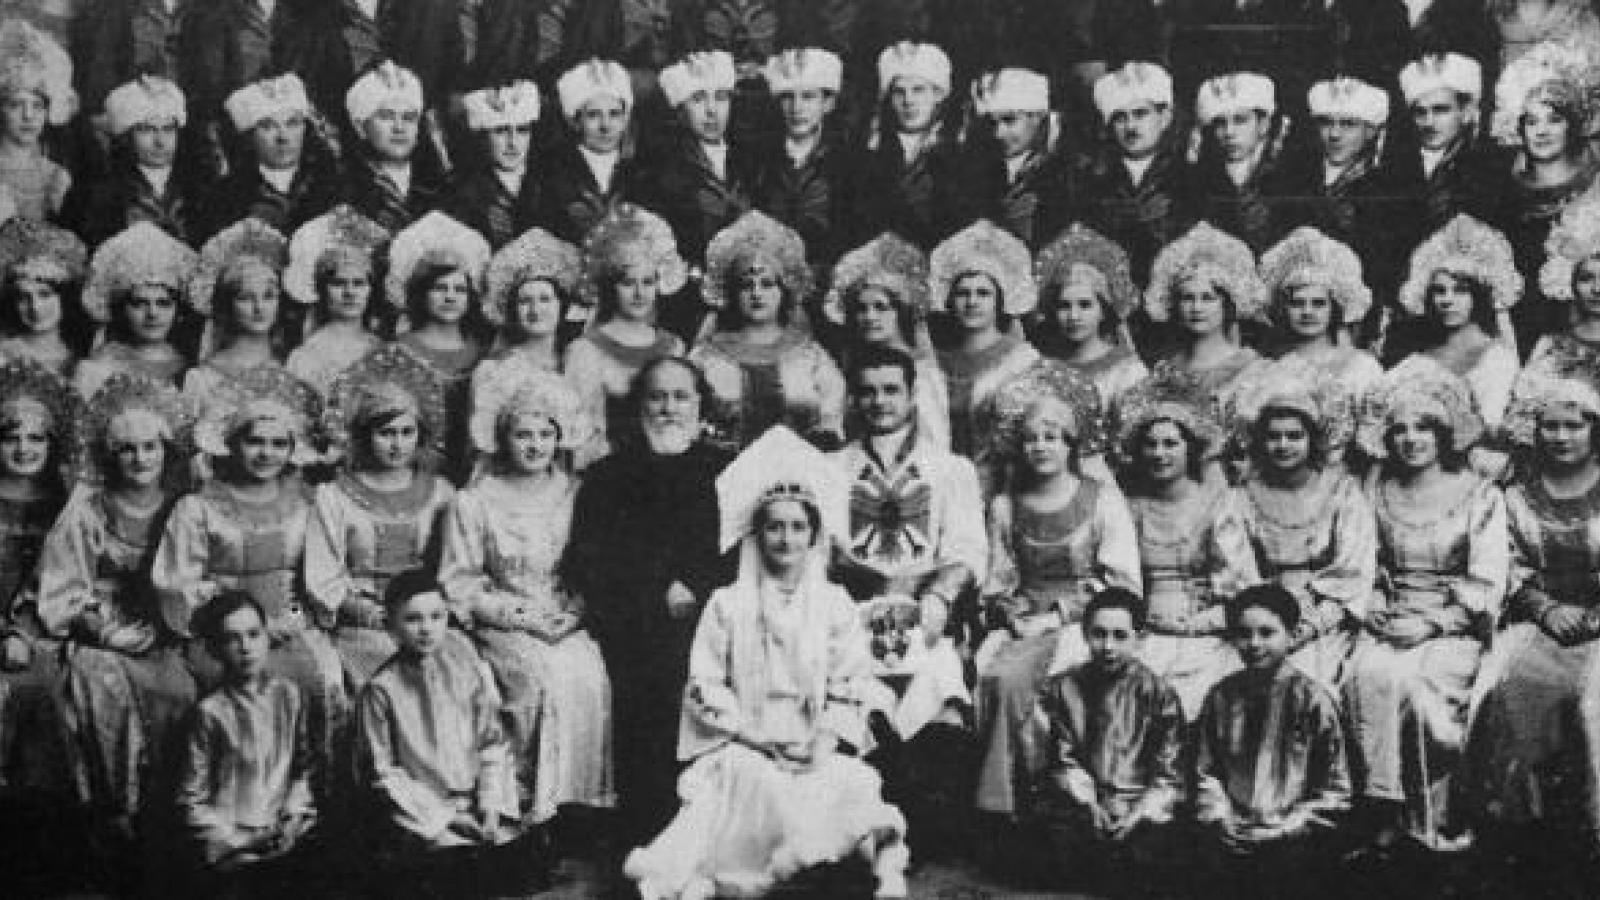 The St. Theodosius Russian Choir, Cleveland, 1932